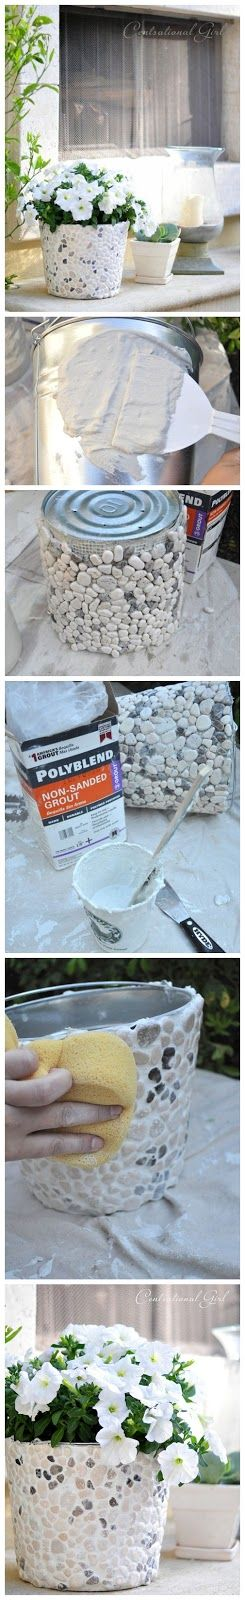 joybobo: How to make your own stone flower pot